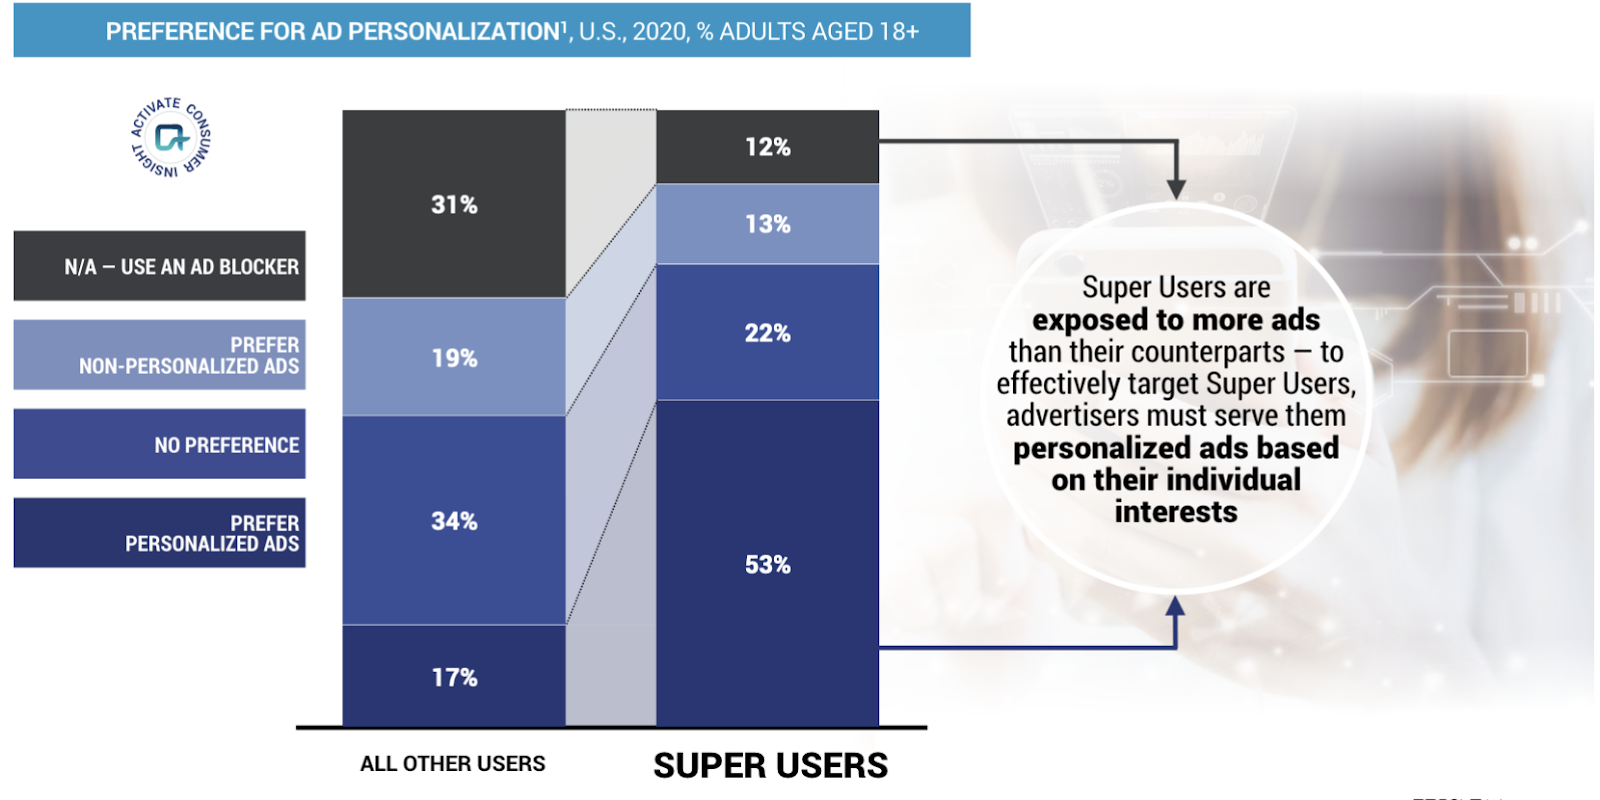 Super Users are exposed to more ads